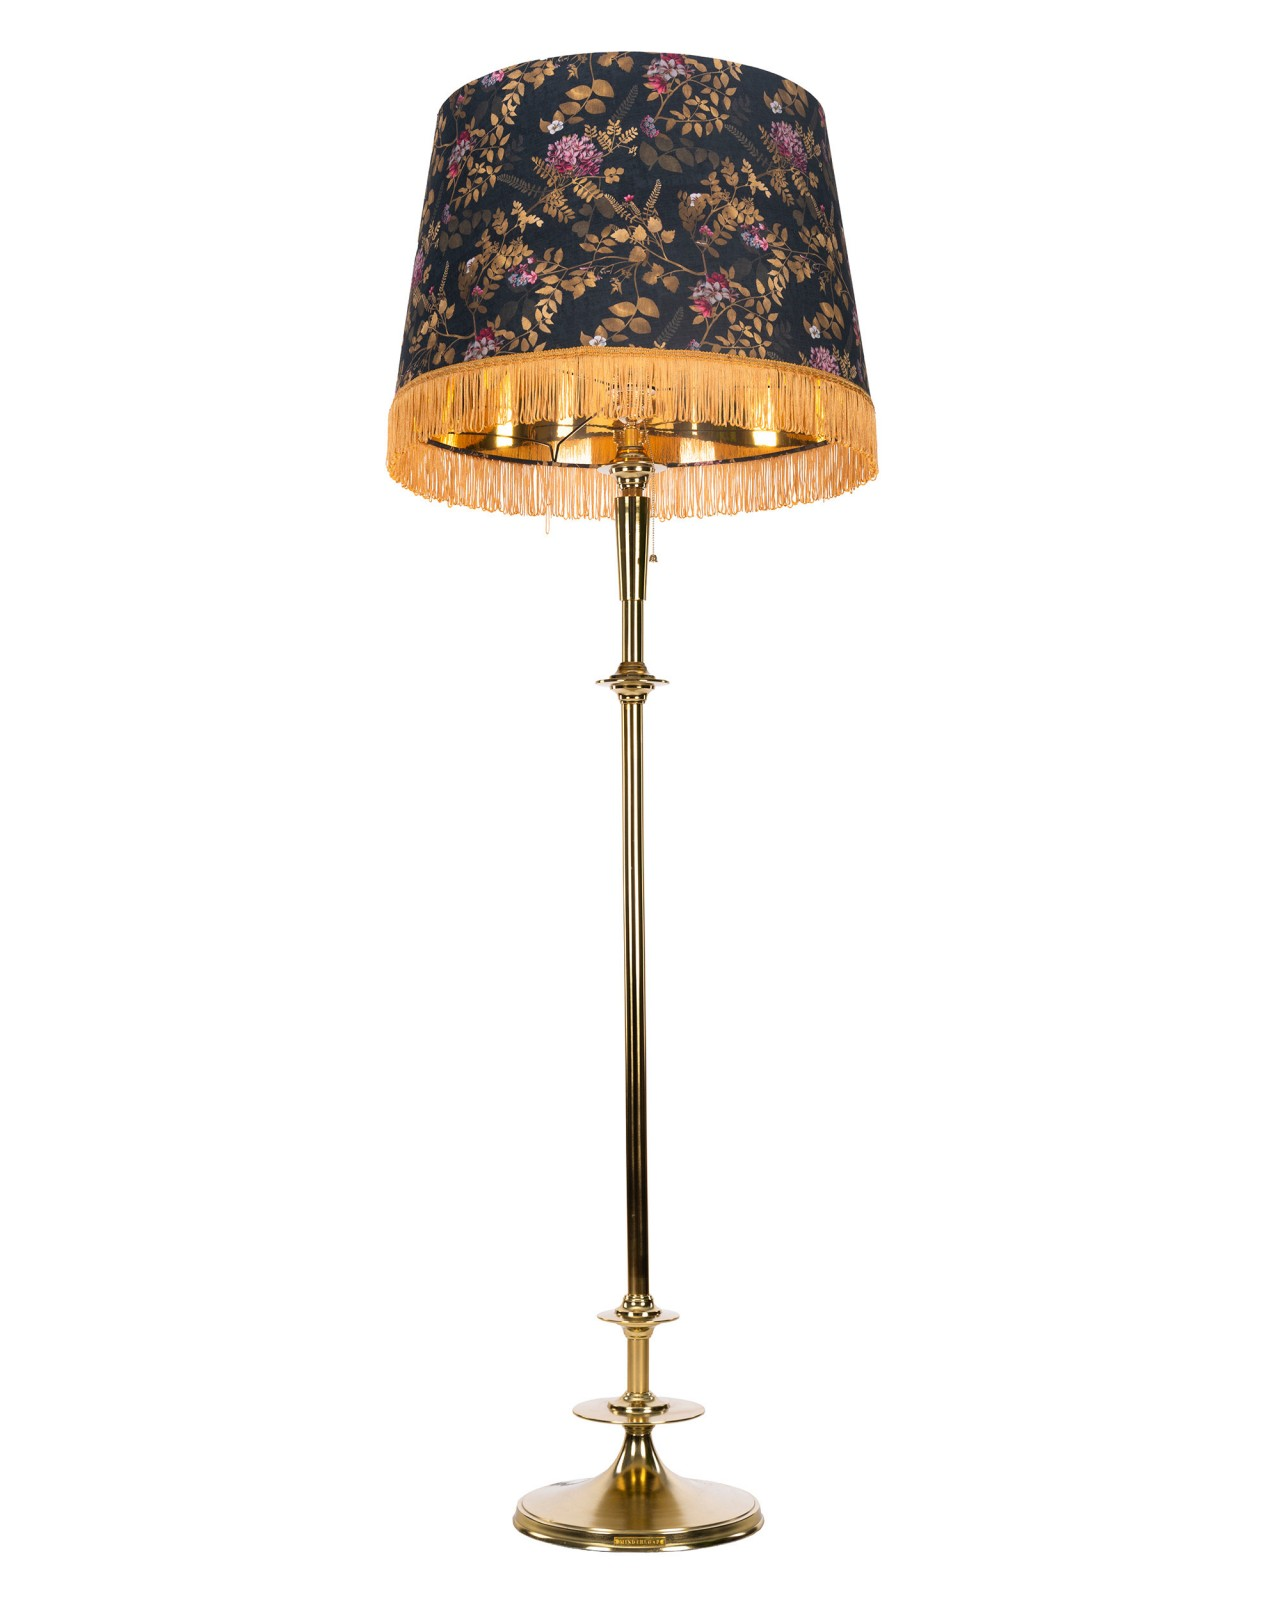 BROCADE REGENCY Floor Lamp